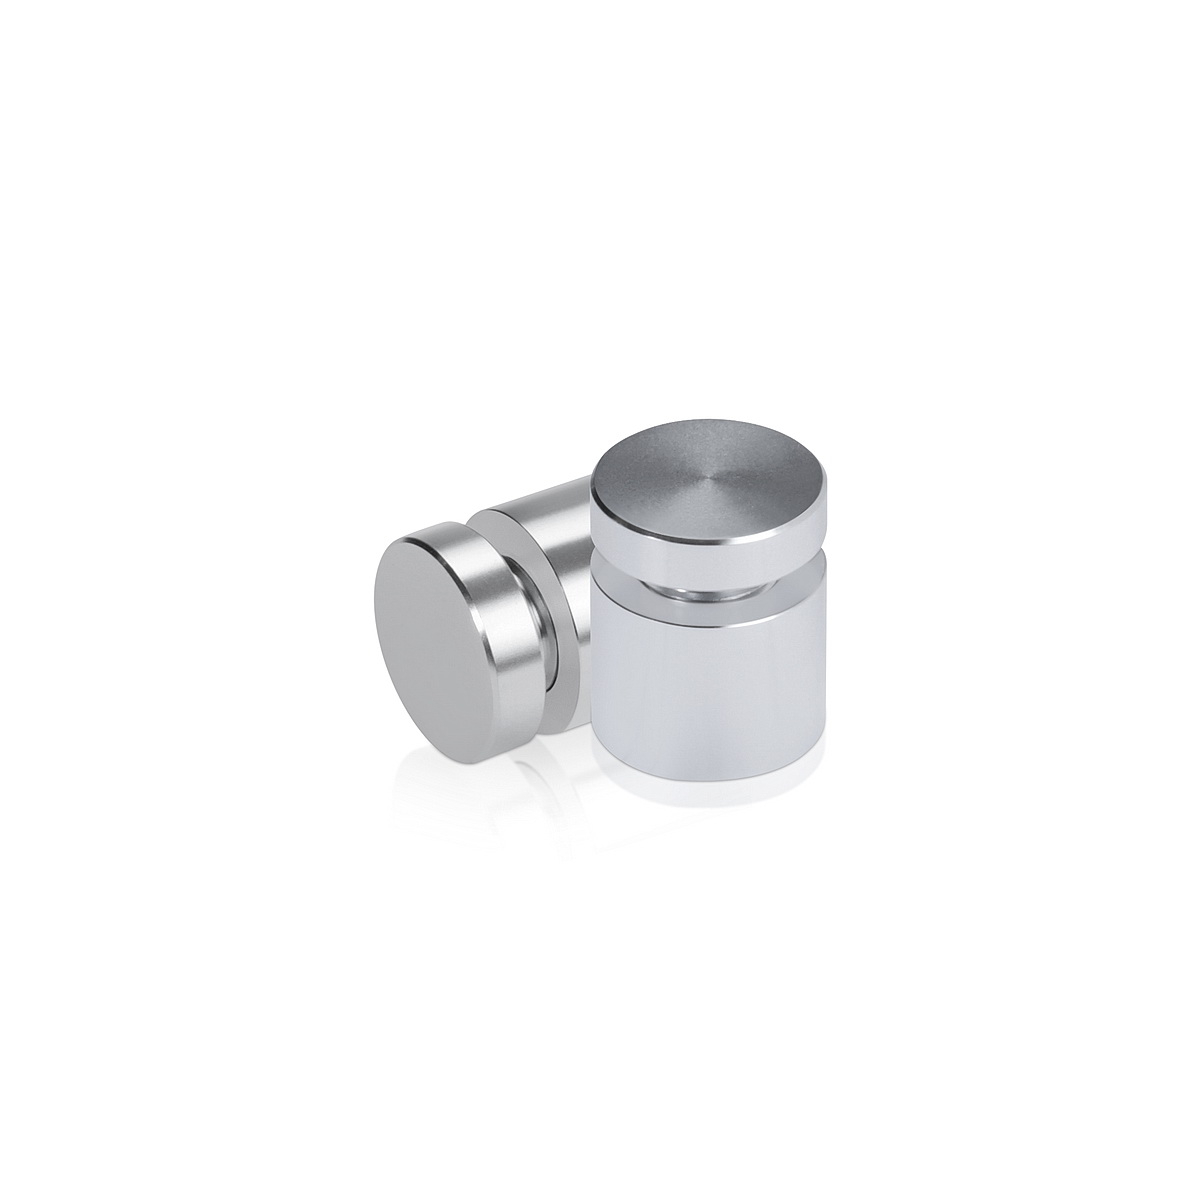 Affordable Aluminum Standoffs, Diameter: 5/8'', Standoff:  1/2'', Aluminum Silver Finish